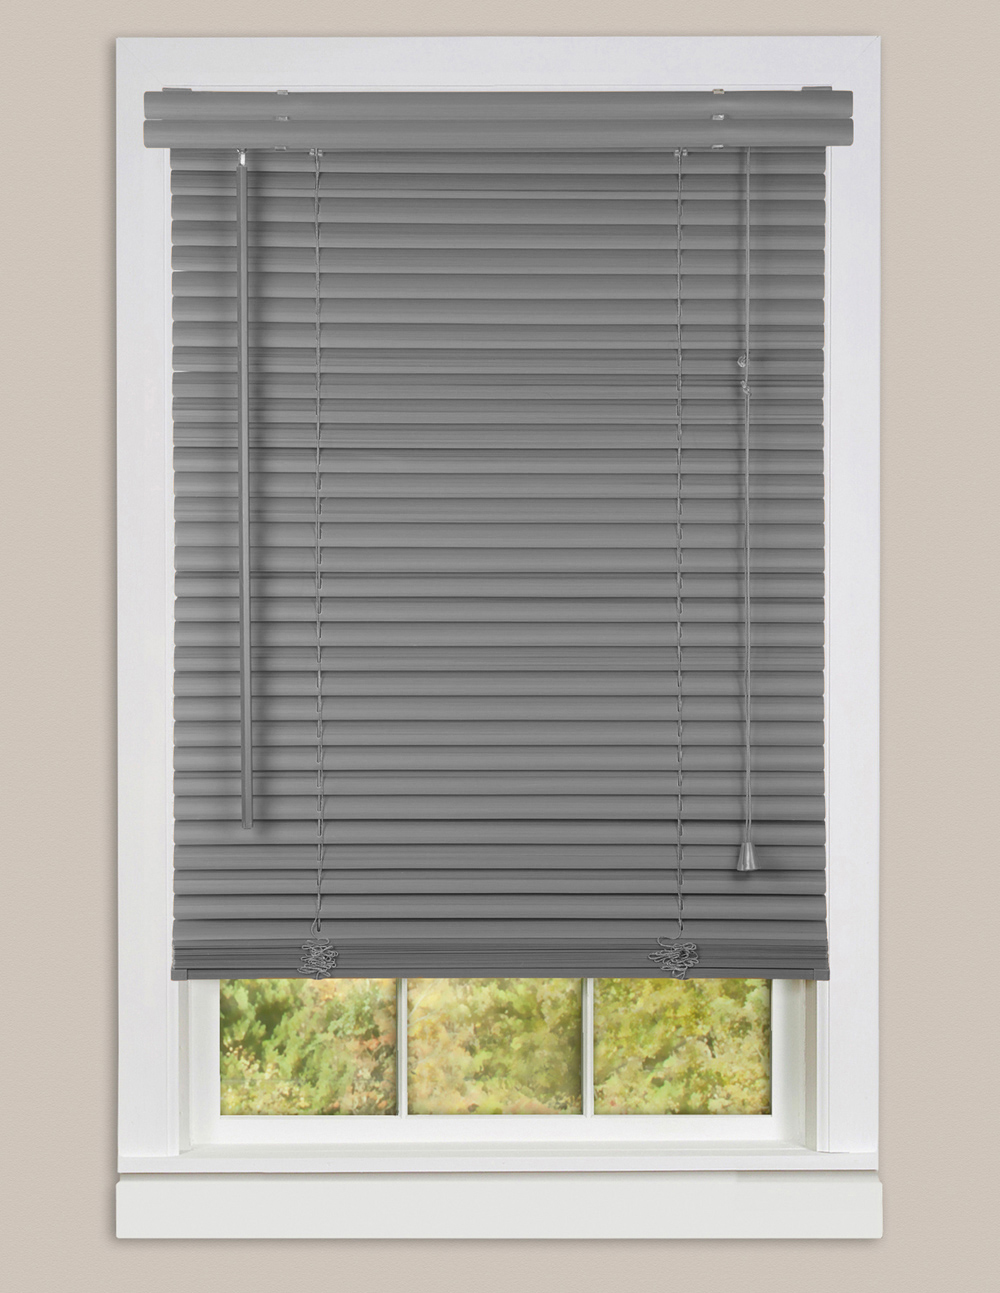 Window Blinds Mini Blinds 1 Slats White Venetian Vinyl Venetian Blind Available In Black Brown Beige Gray White Woodtone Walmart Com Walmart Com